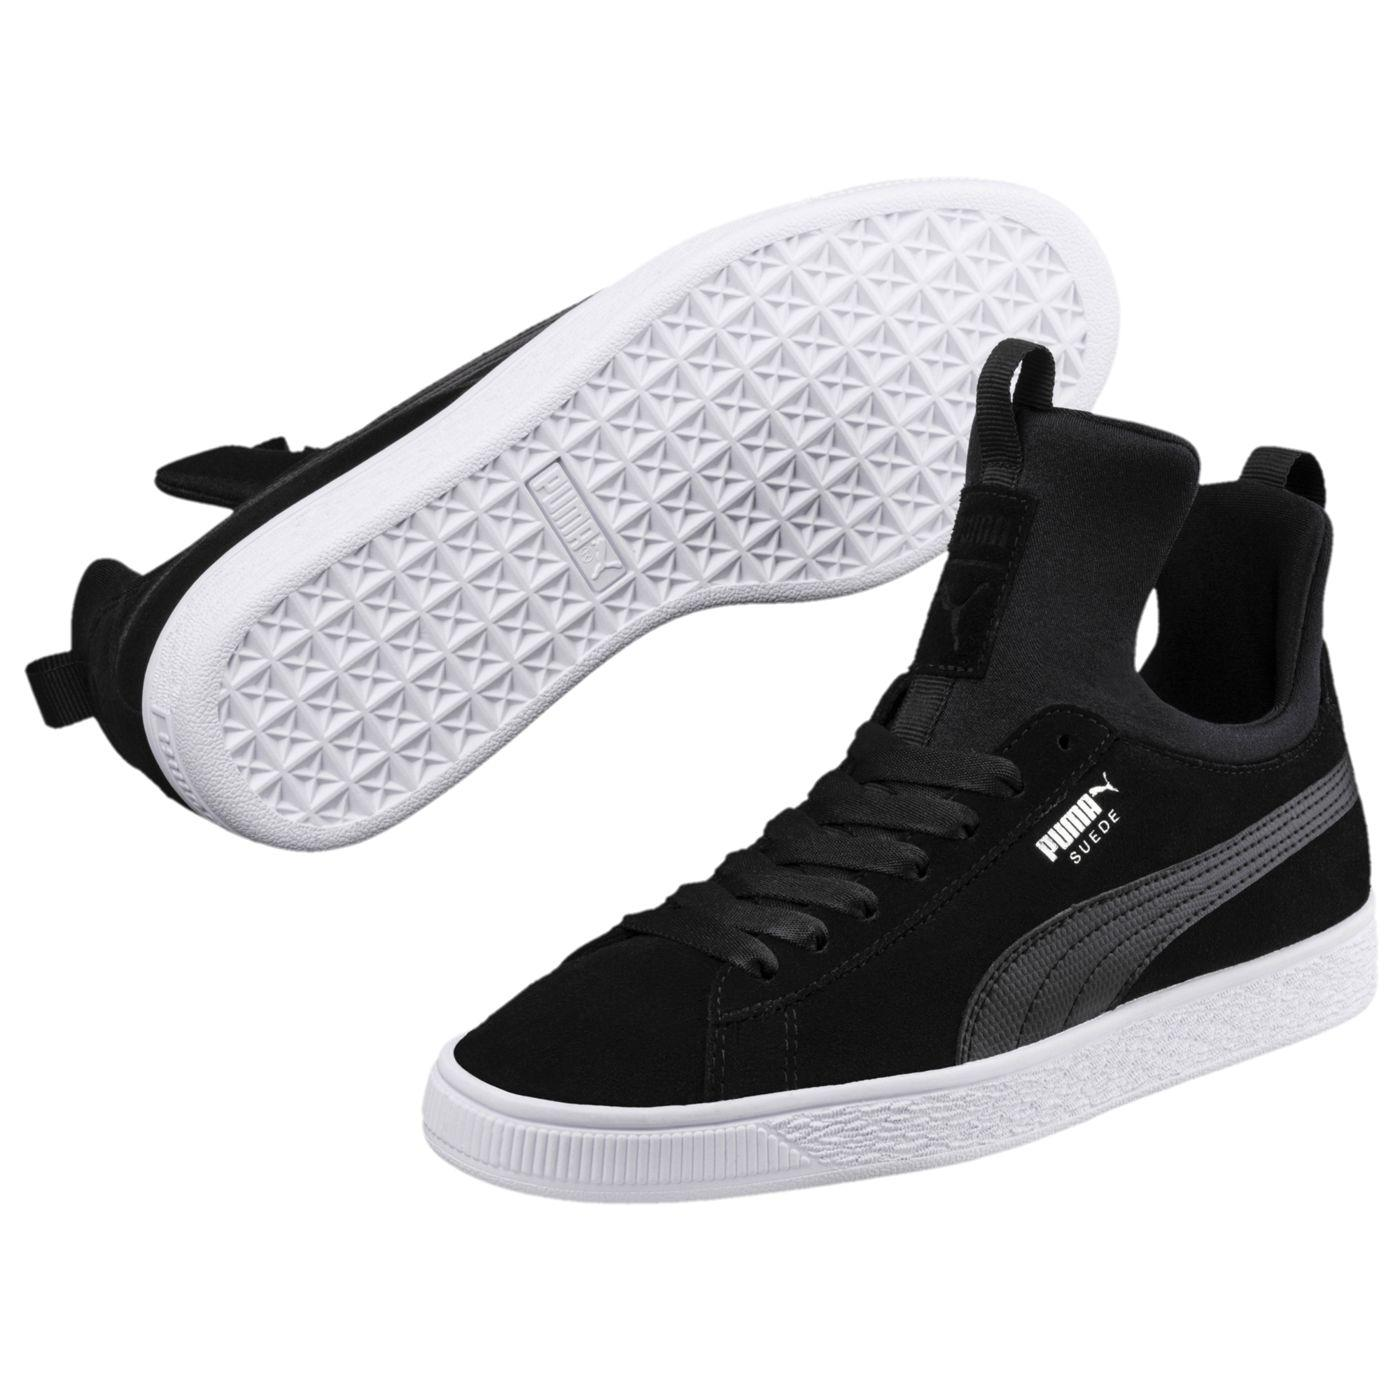 f59308f4fd279 Sneakers for Women for sale - Womens Sneakers online brands, prices ... puma